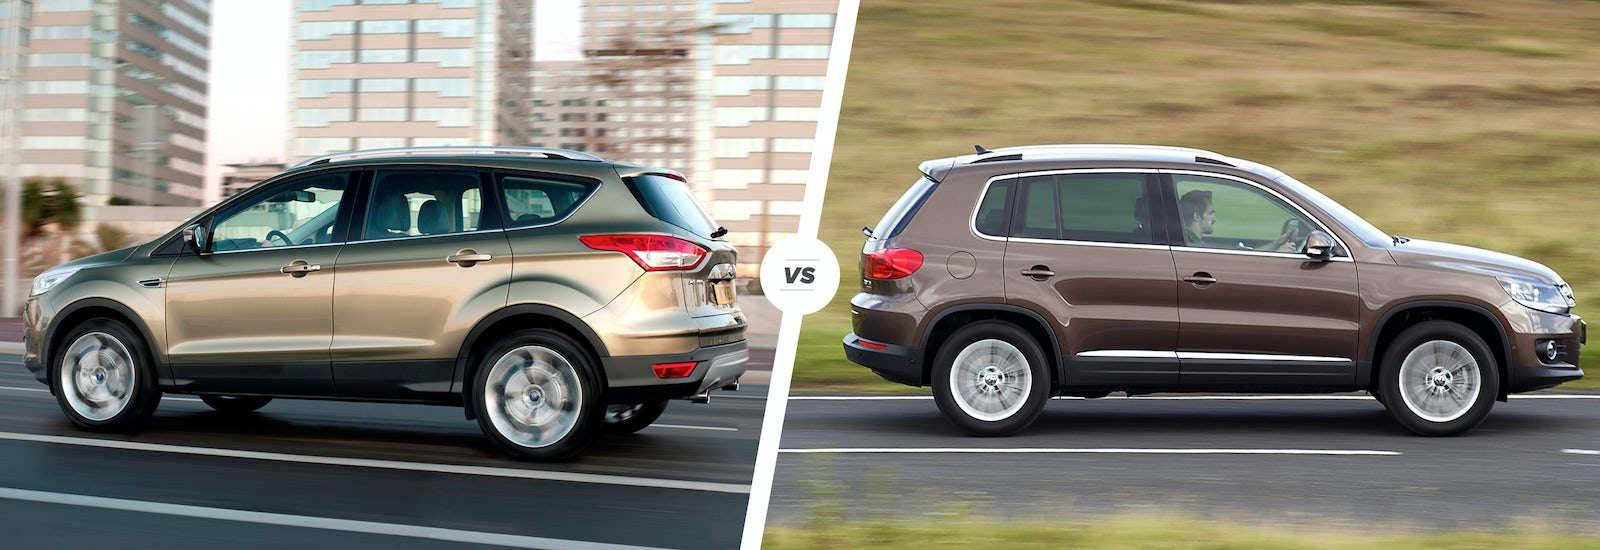 Ford Kuga Vs Vw Tiguan Crossovers Compared Carwow 2014 Focus Stereo Upgrade Sadly The Old Kugas Performance Option Brilliant 25 Litre Five Cylinder Turbo Derived From Previous St Hasnt Made It Into Current